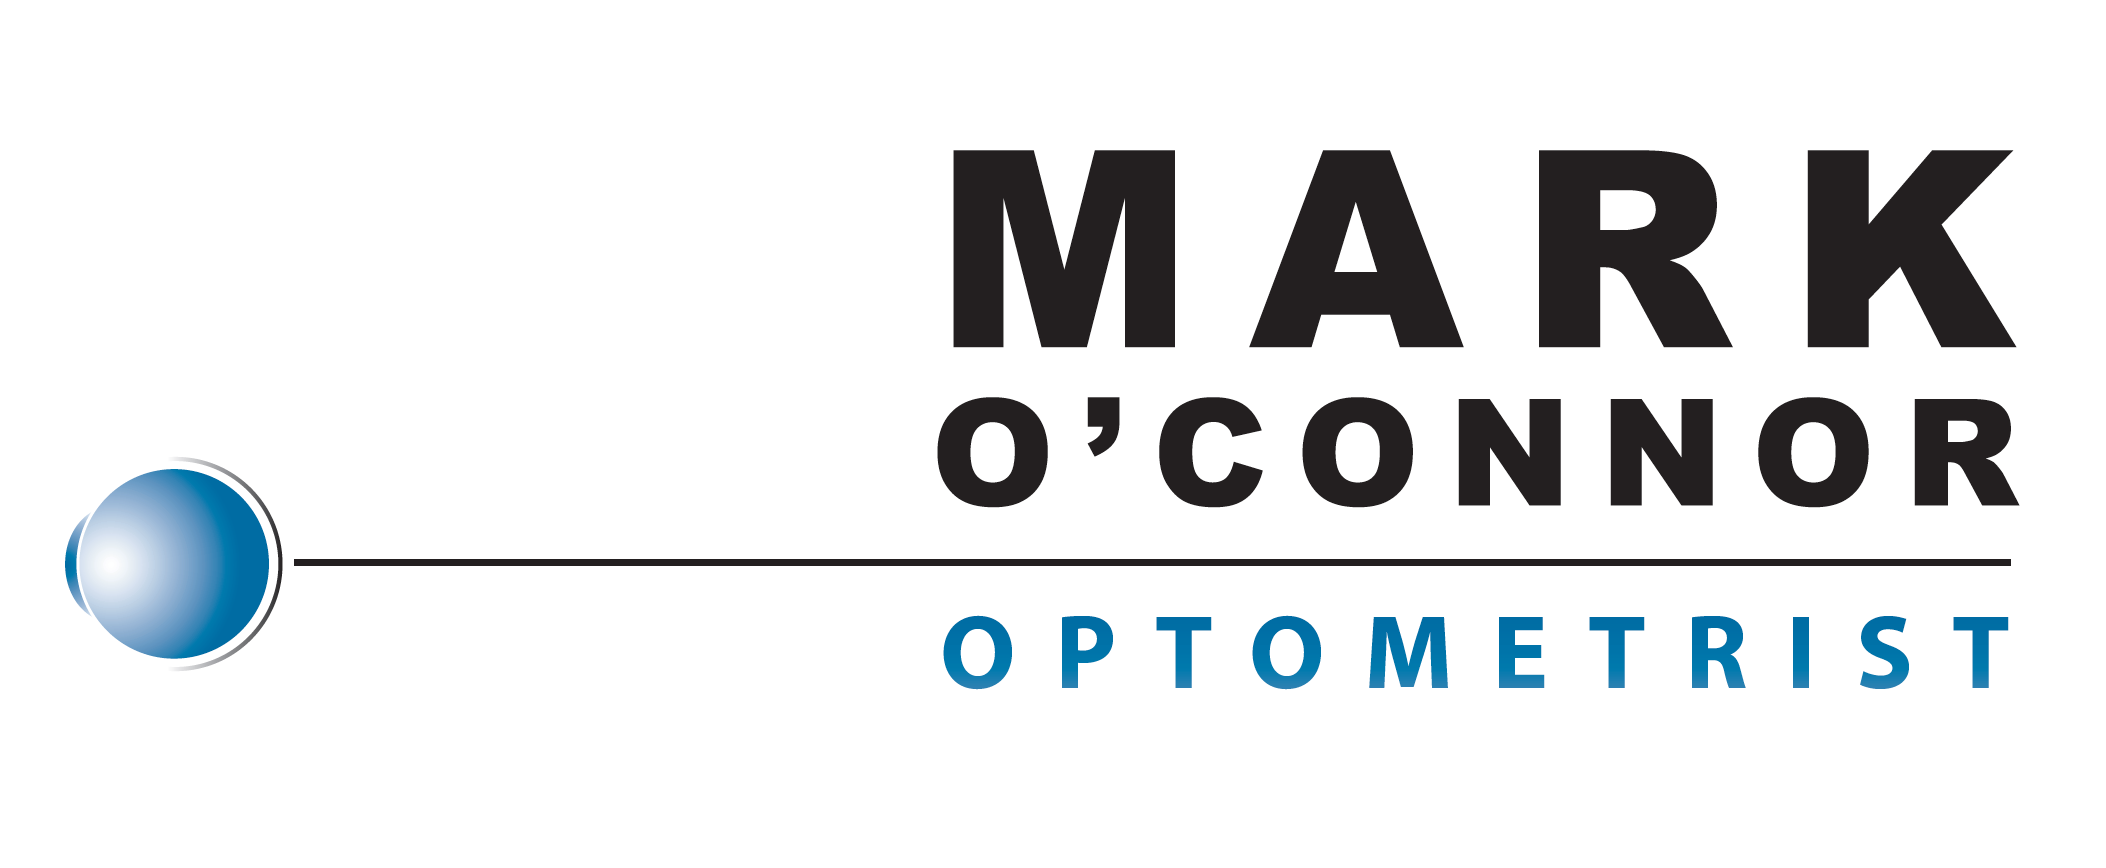 logo for Mark O'Connor Optometrist - Marden Optometrists